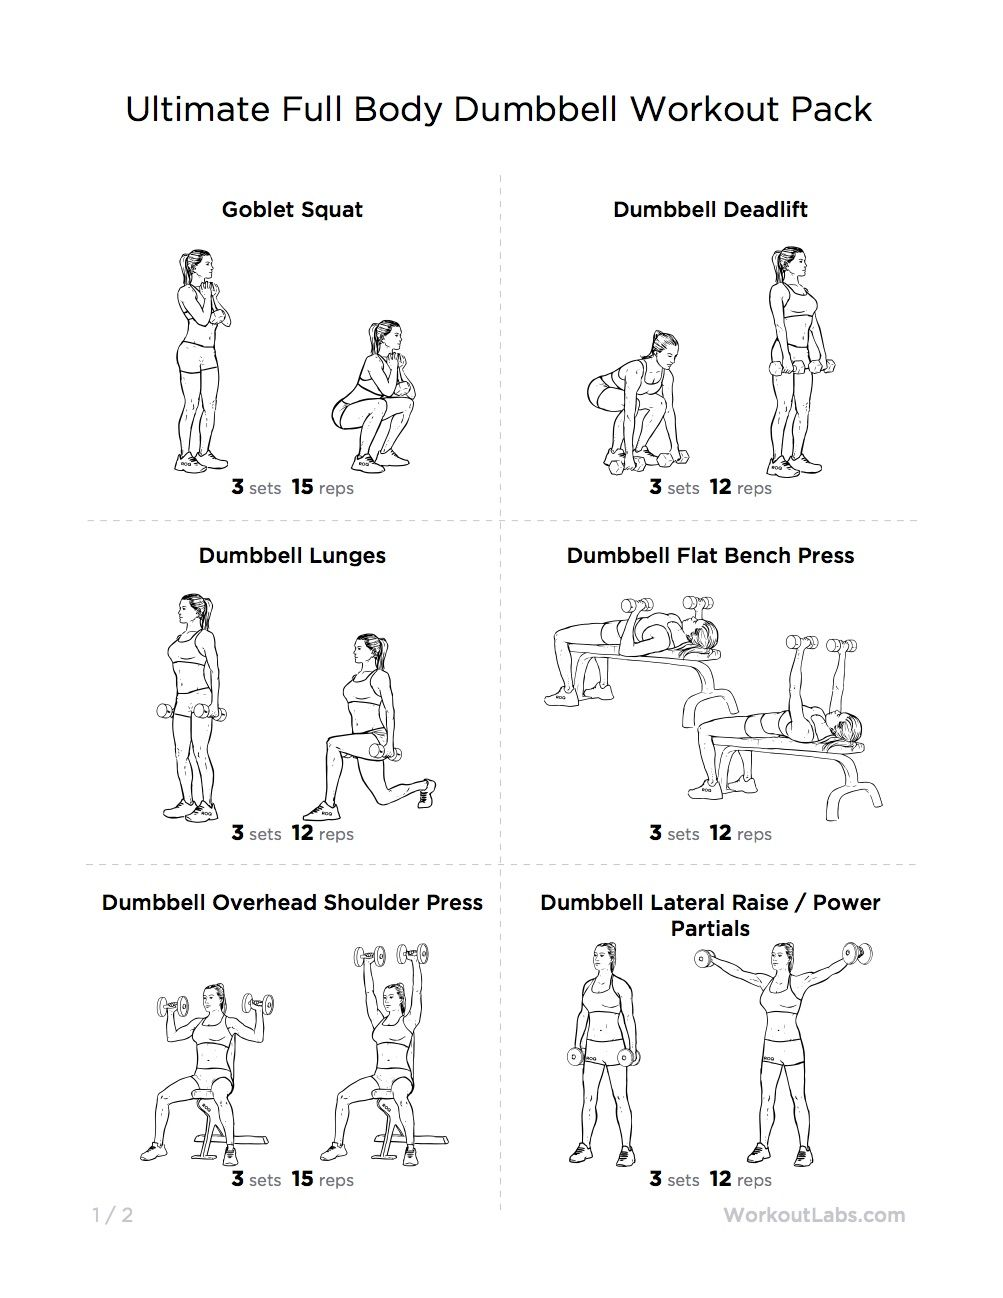 Ultimate Full Body Dumbbell Workout Pack For Men Women